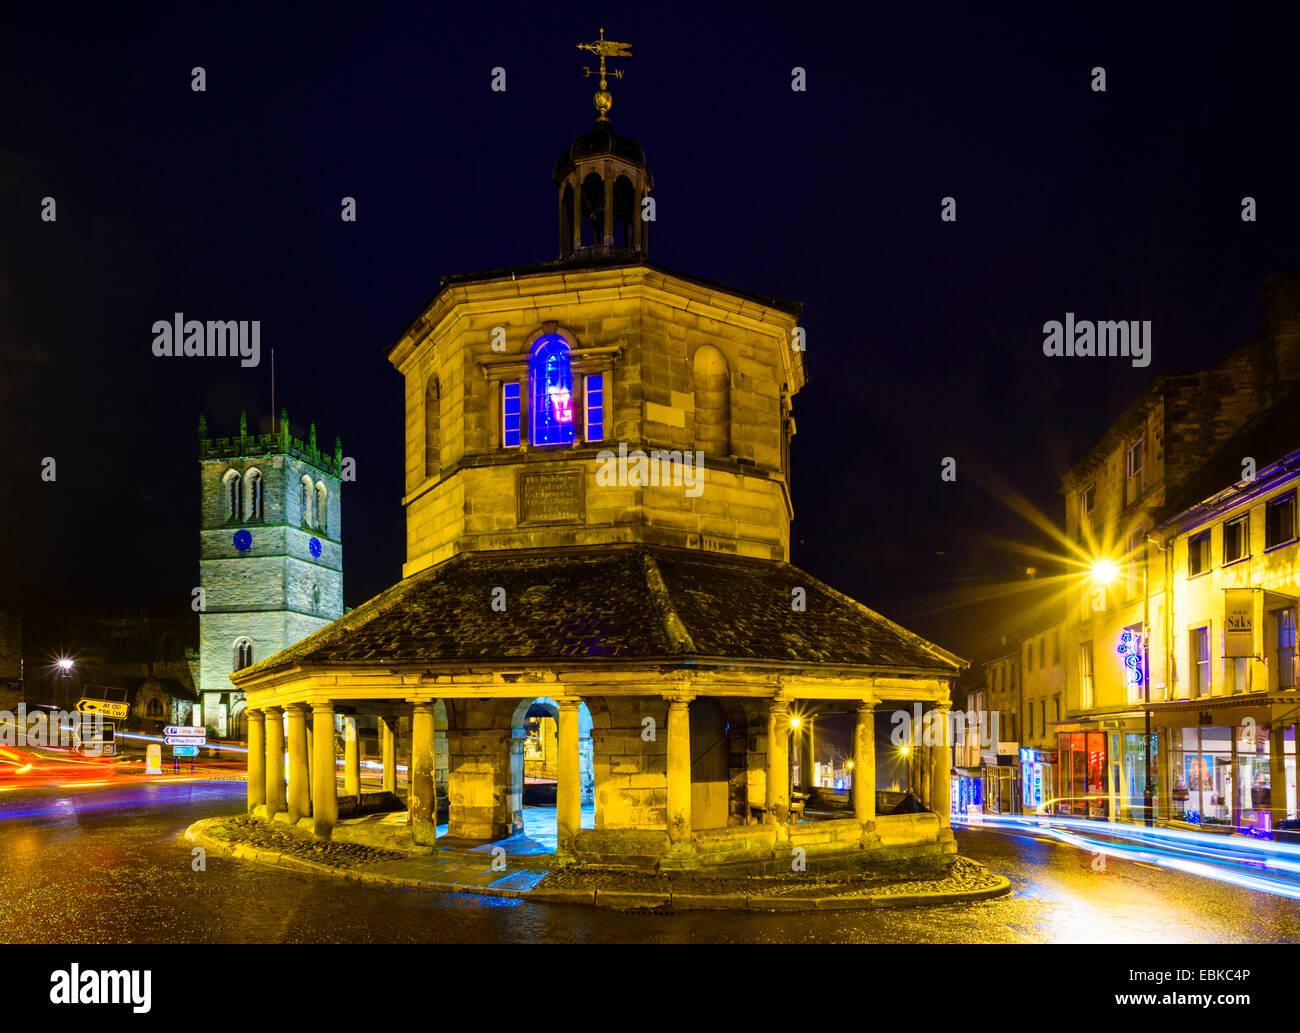 Evening traffic around the Market Cross or Butter Market in Barnard Castle, County Durham - Stock Image